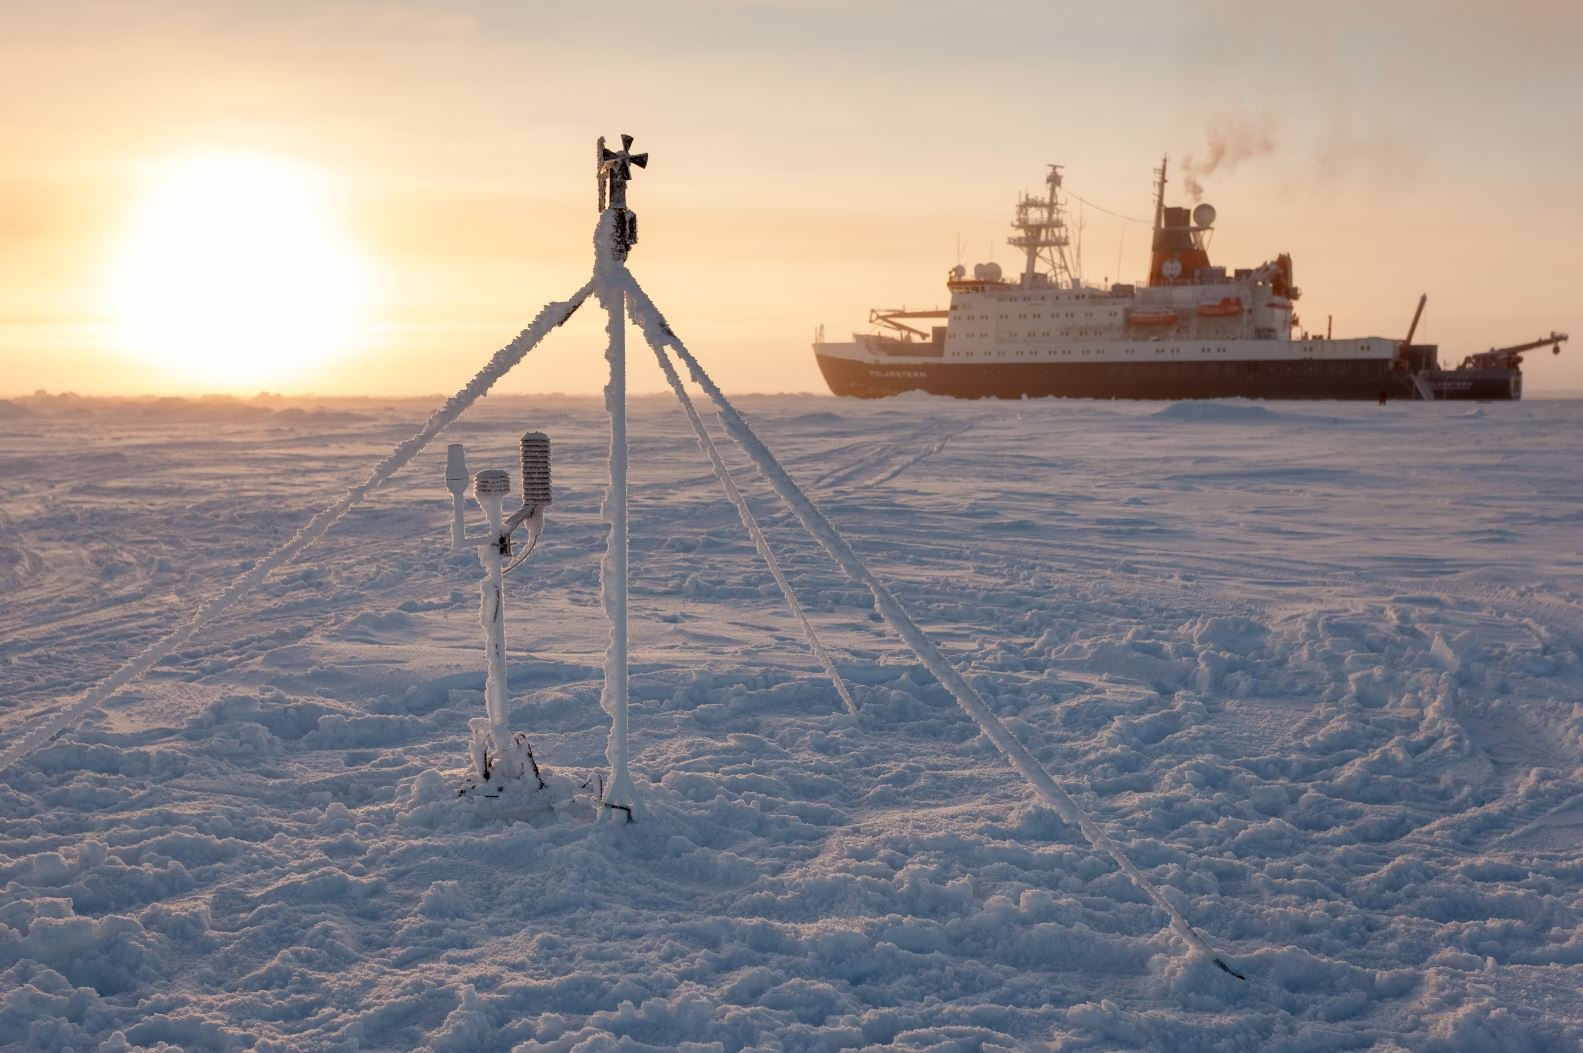 For Brussels, there's no Arctic business without the science business